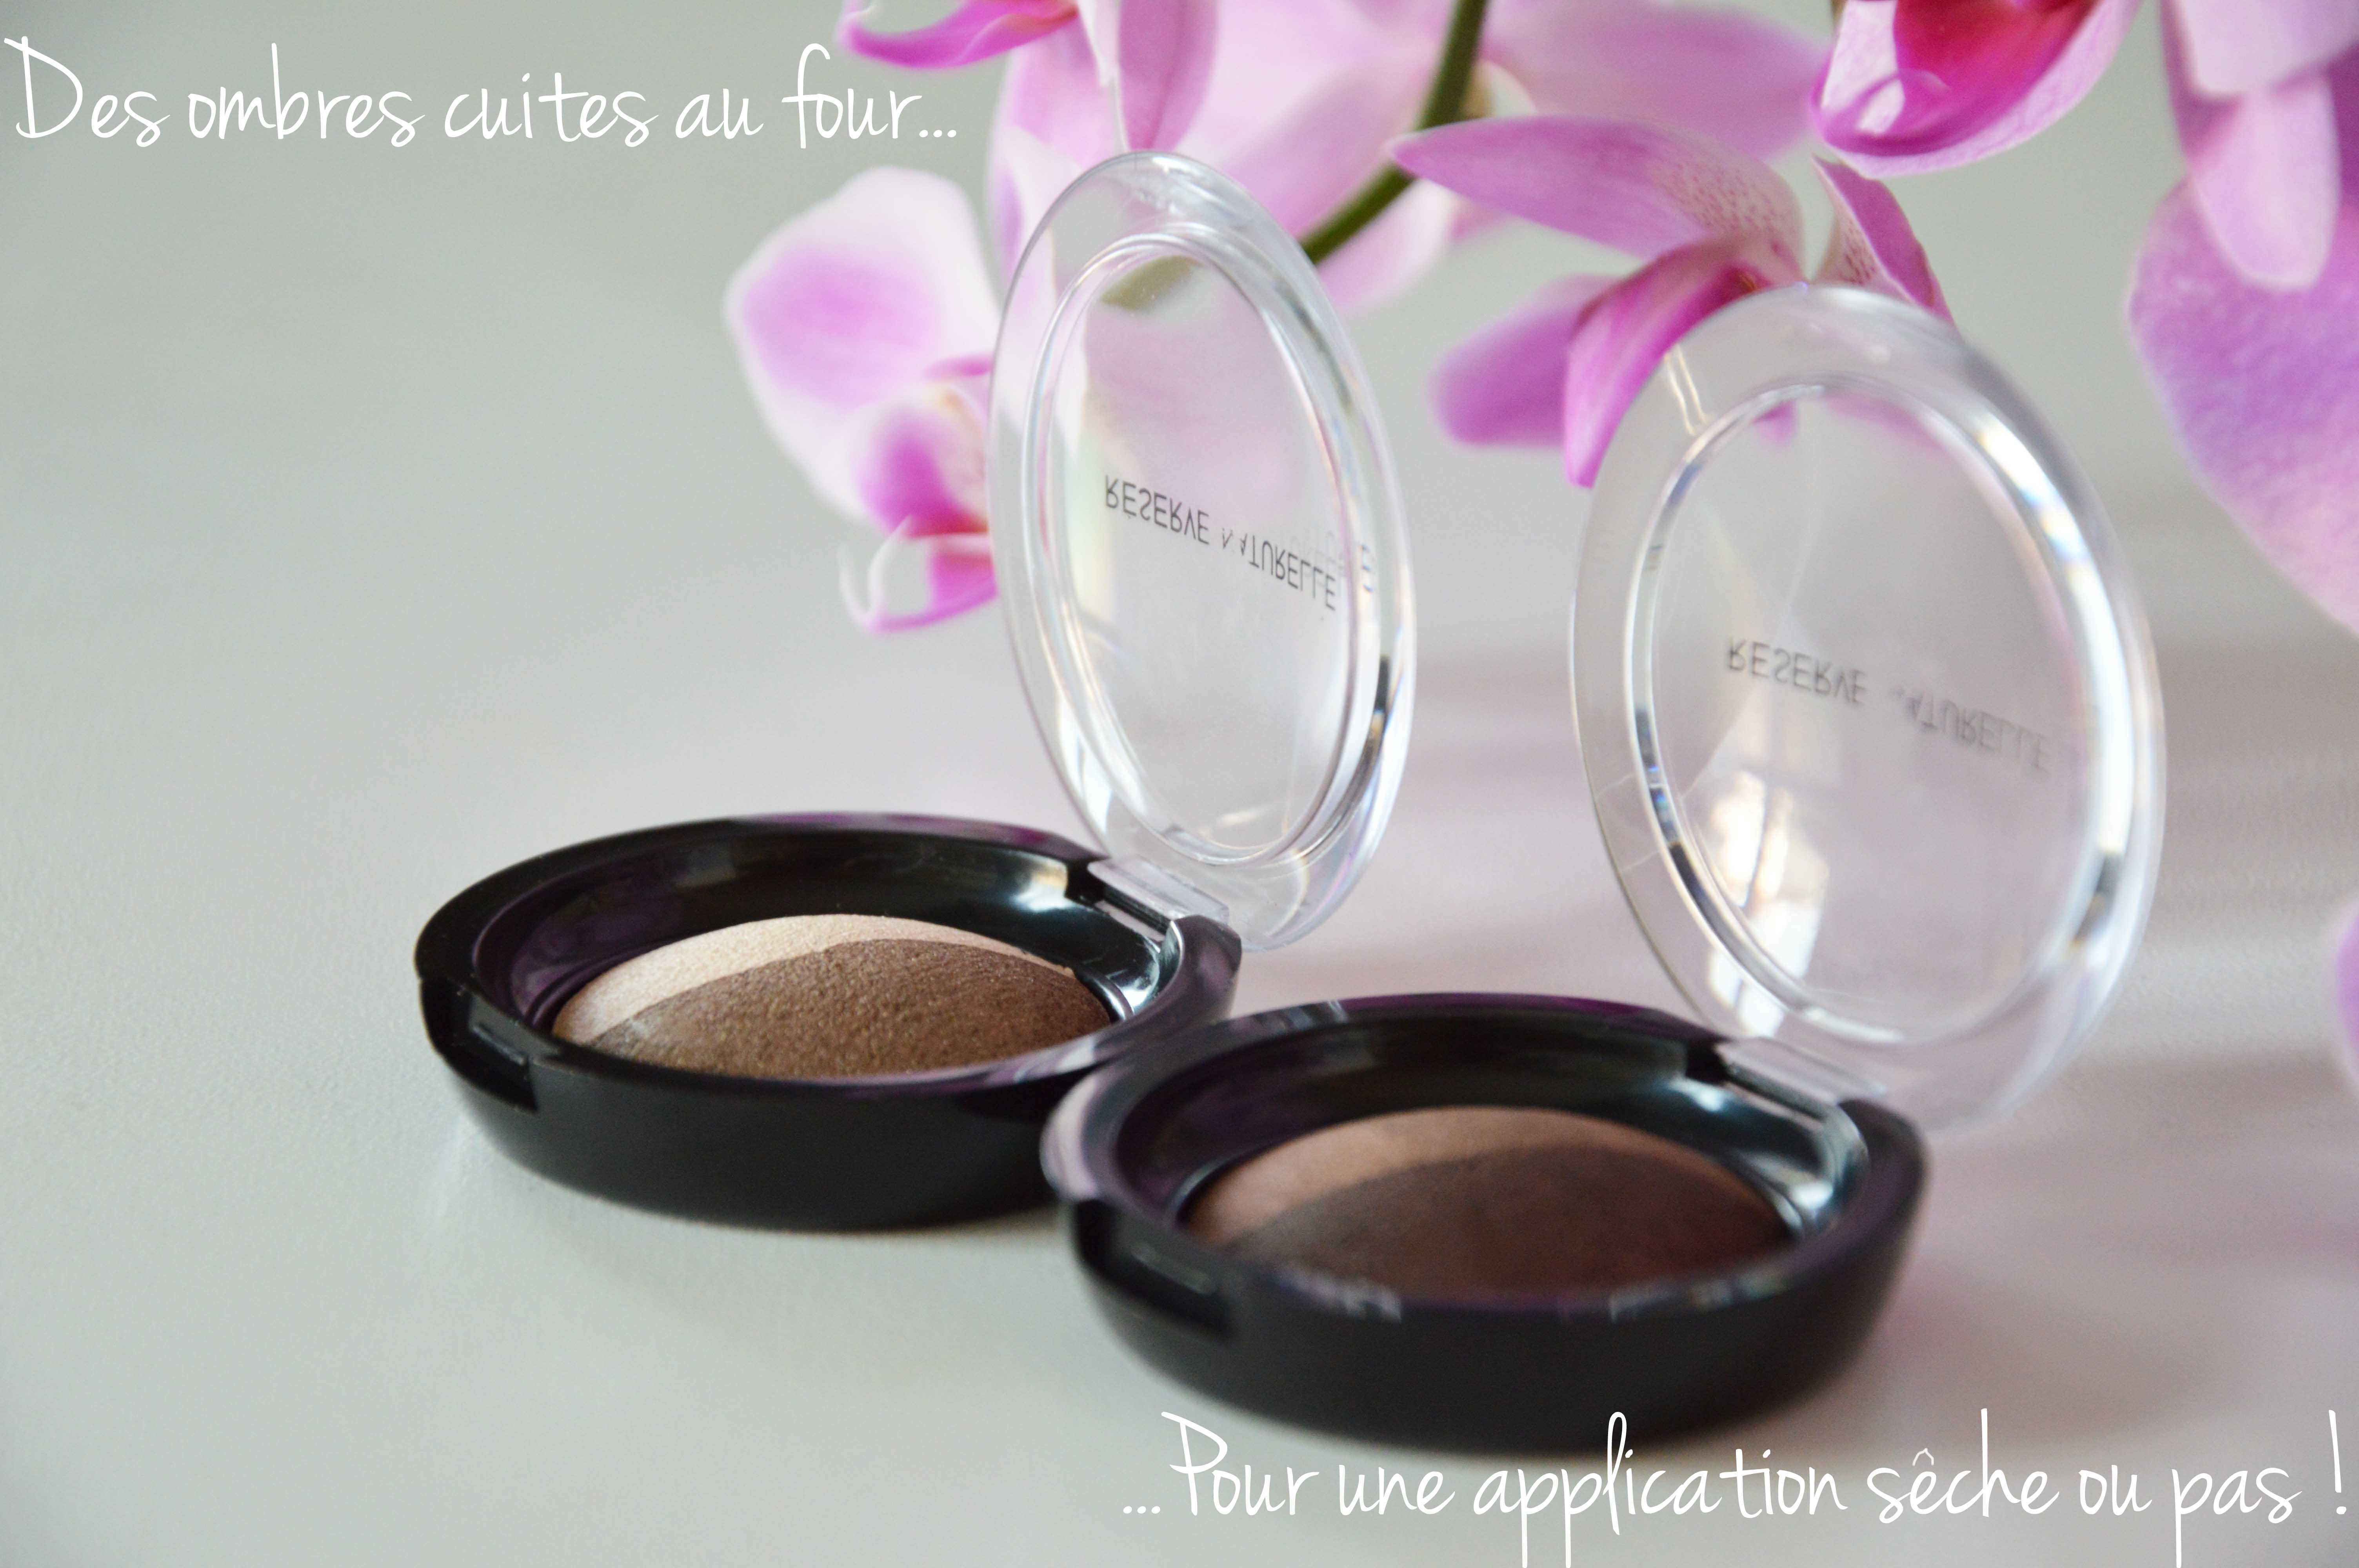 ALITTLEB_BLOG_BEAUTE_RESERVE_NATURELLE_DUO_OMBRES_A_PAUPIERES_PLATINIUM_ILLUSION_OMBRES_CUITES